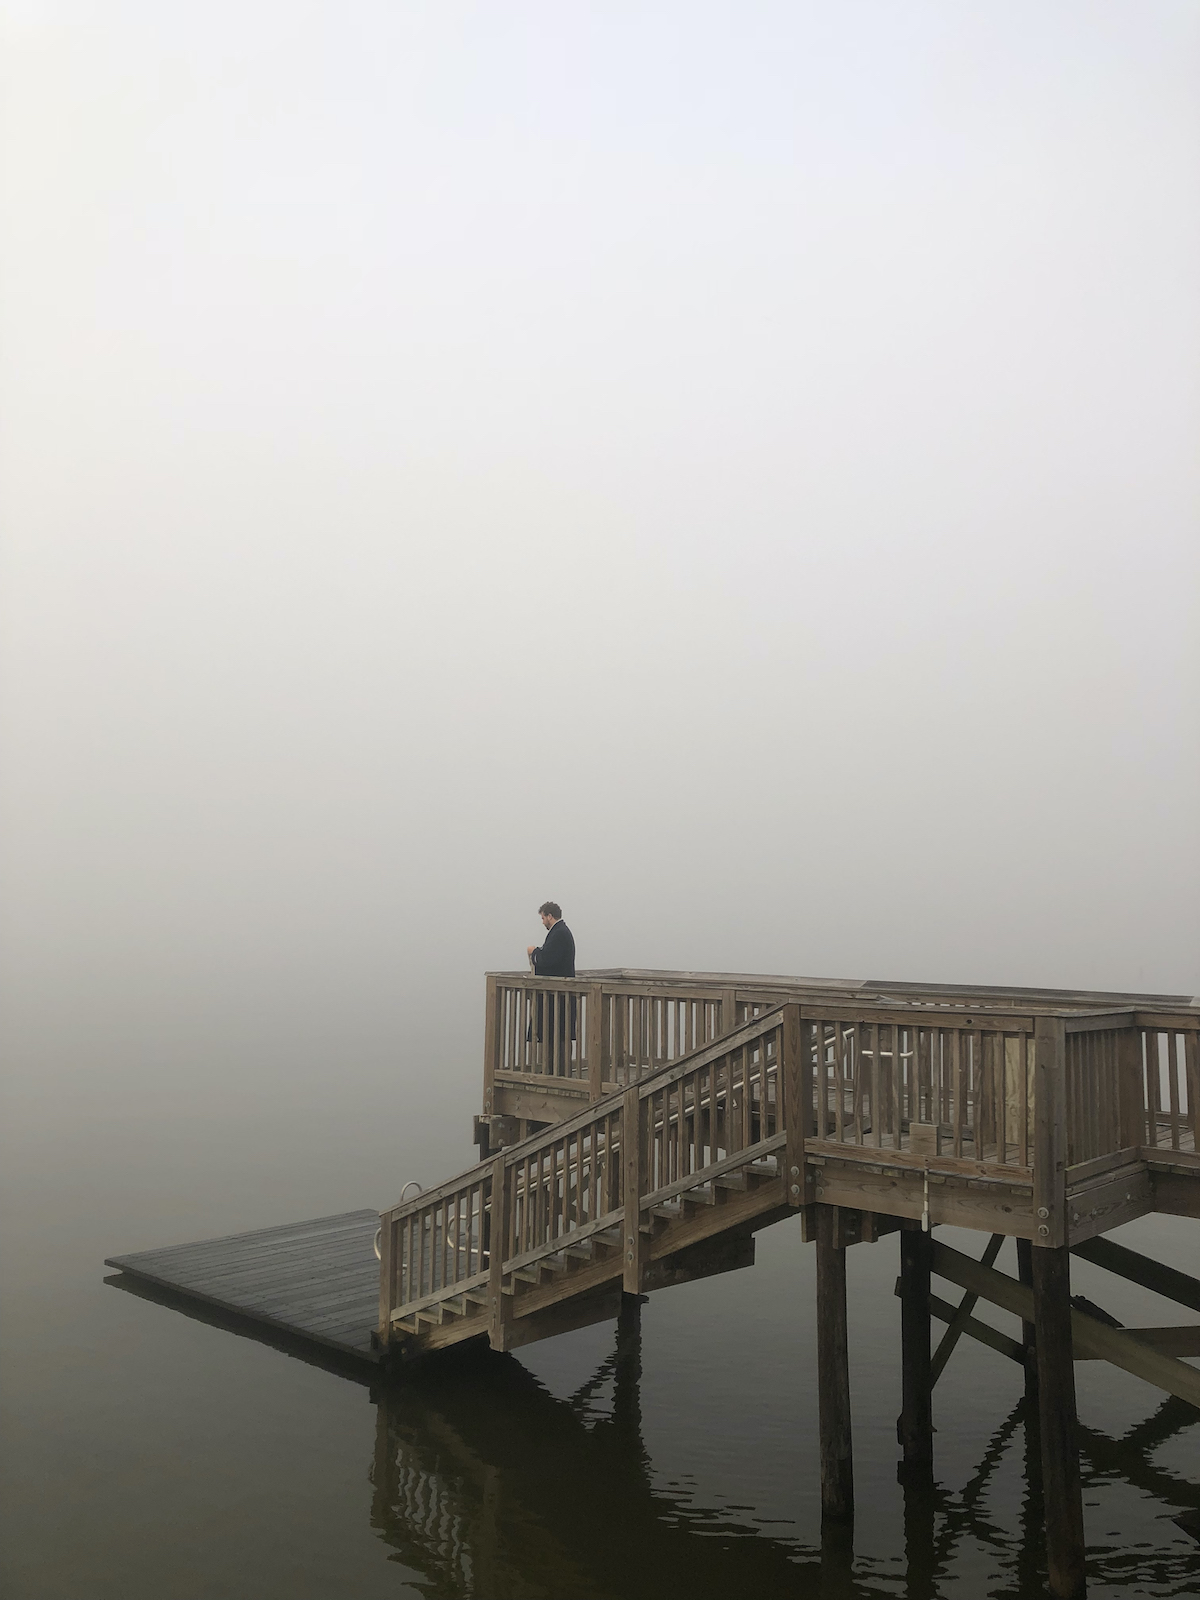 A dock in the water with a wooden walkway with a man staring over the edge in to the beyond